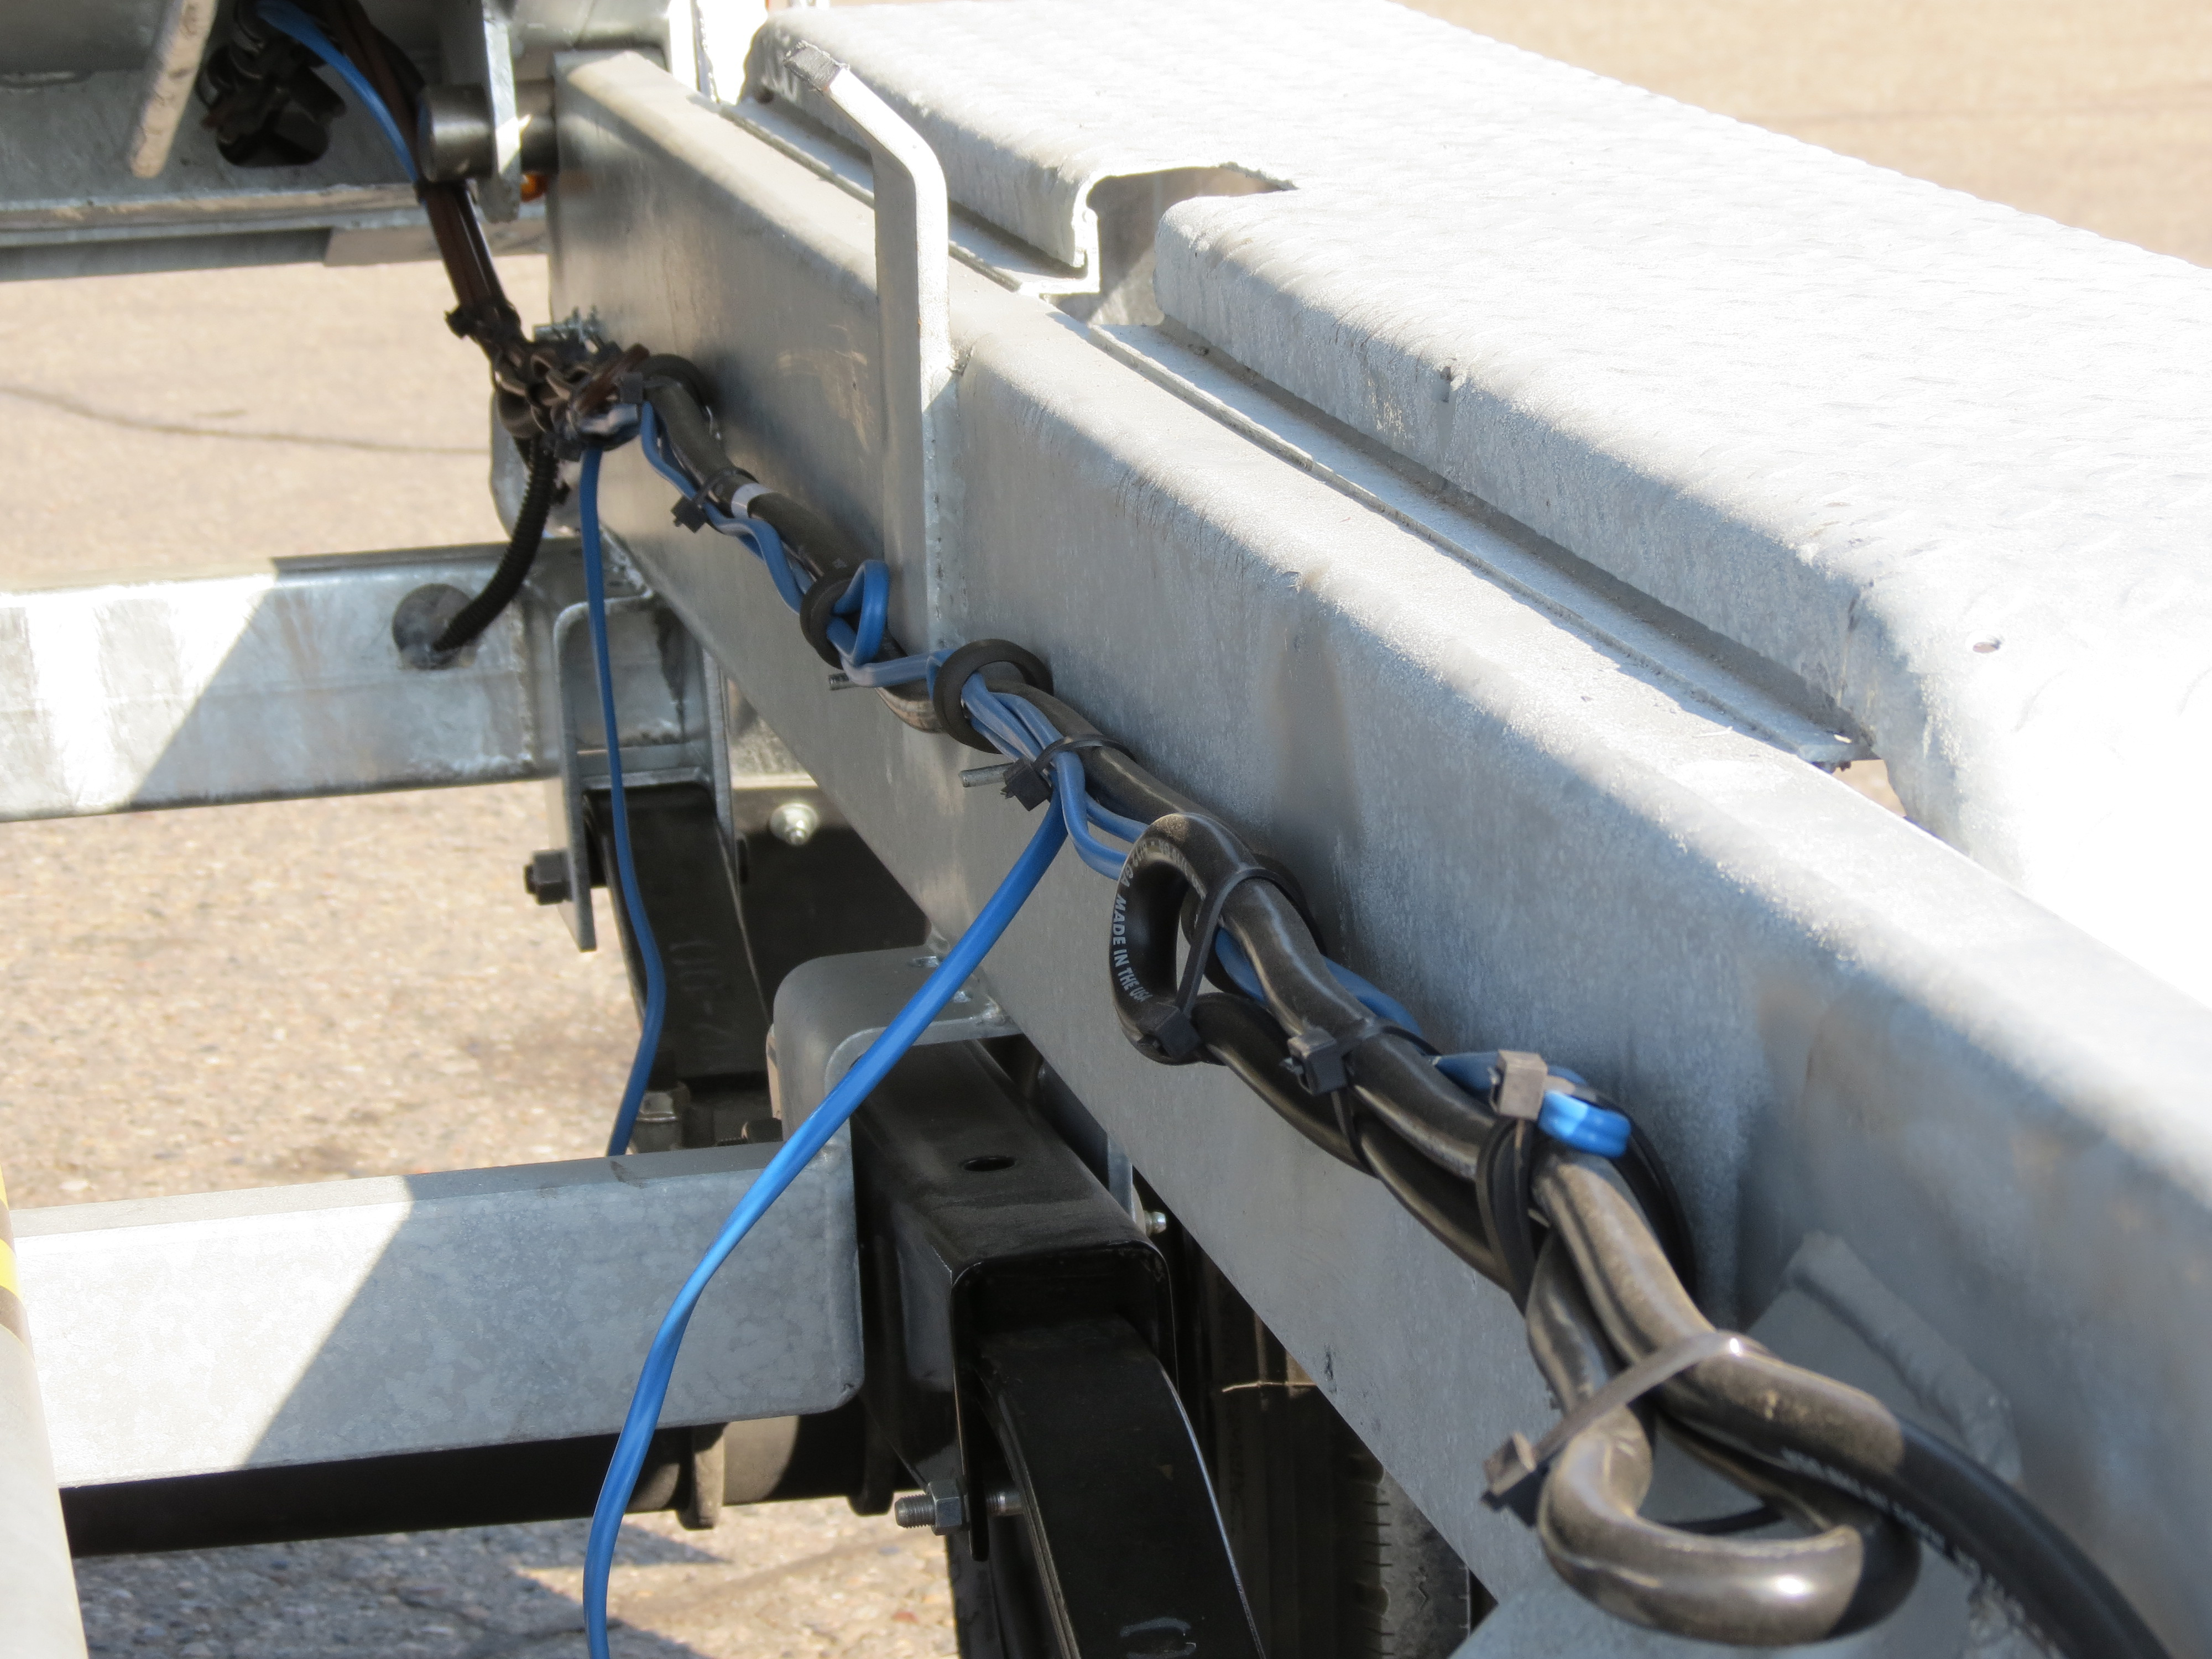 Trailer Wiring And Lighting: Troubleshooting And Maintenance - Vehicle Trailer Wiring Diagram